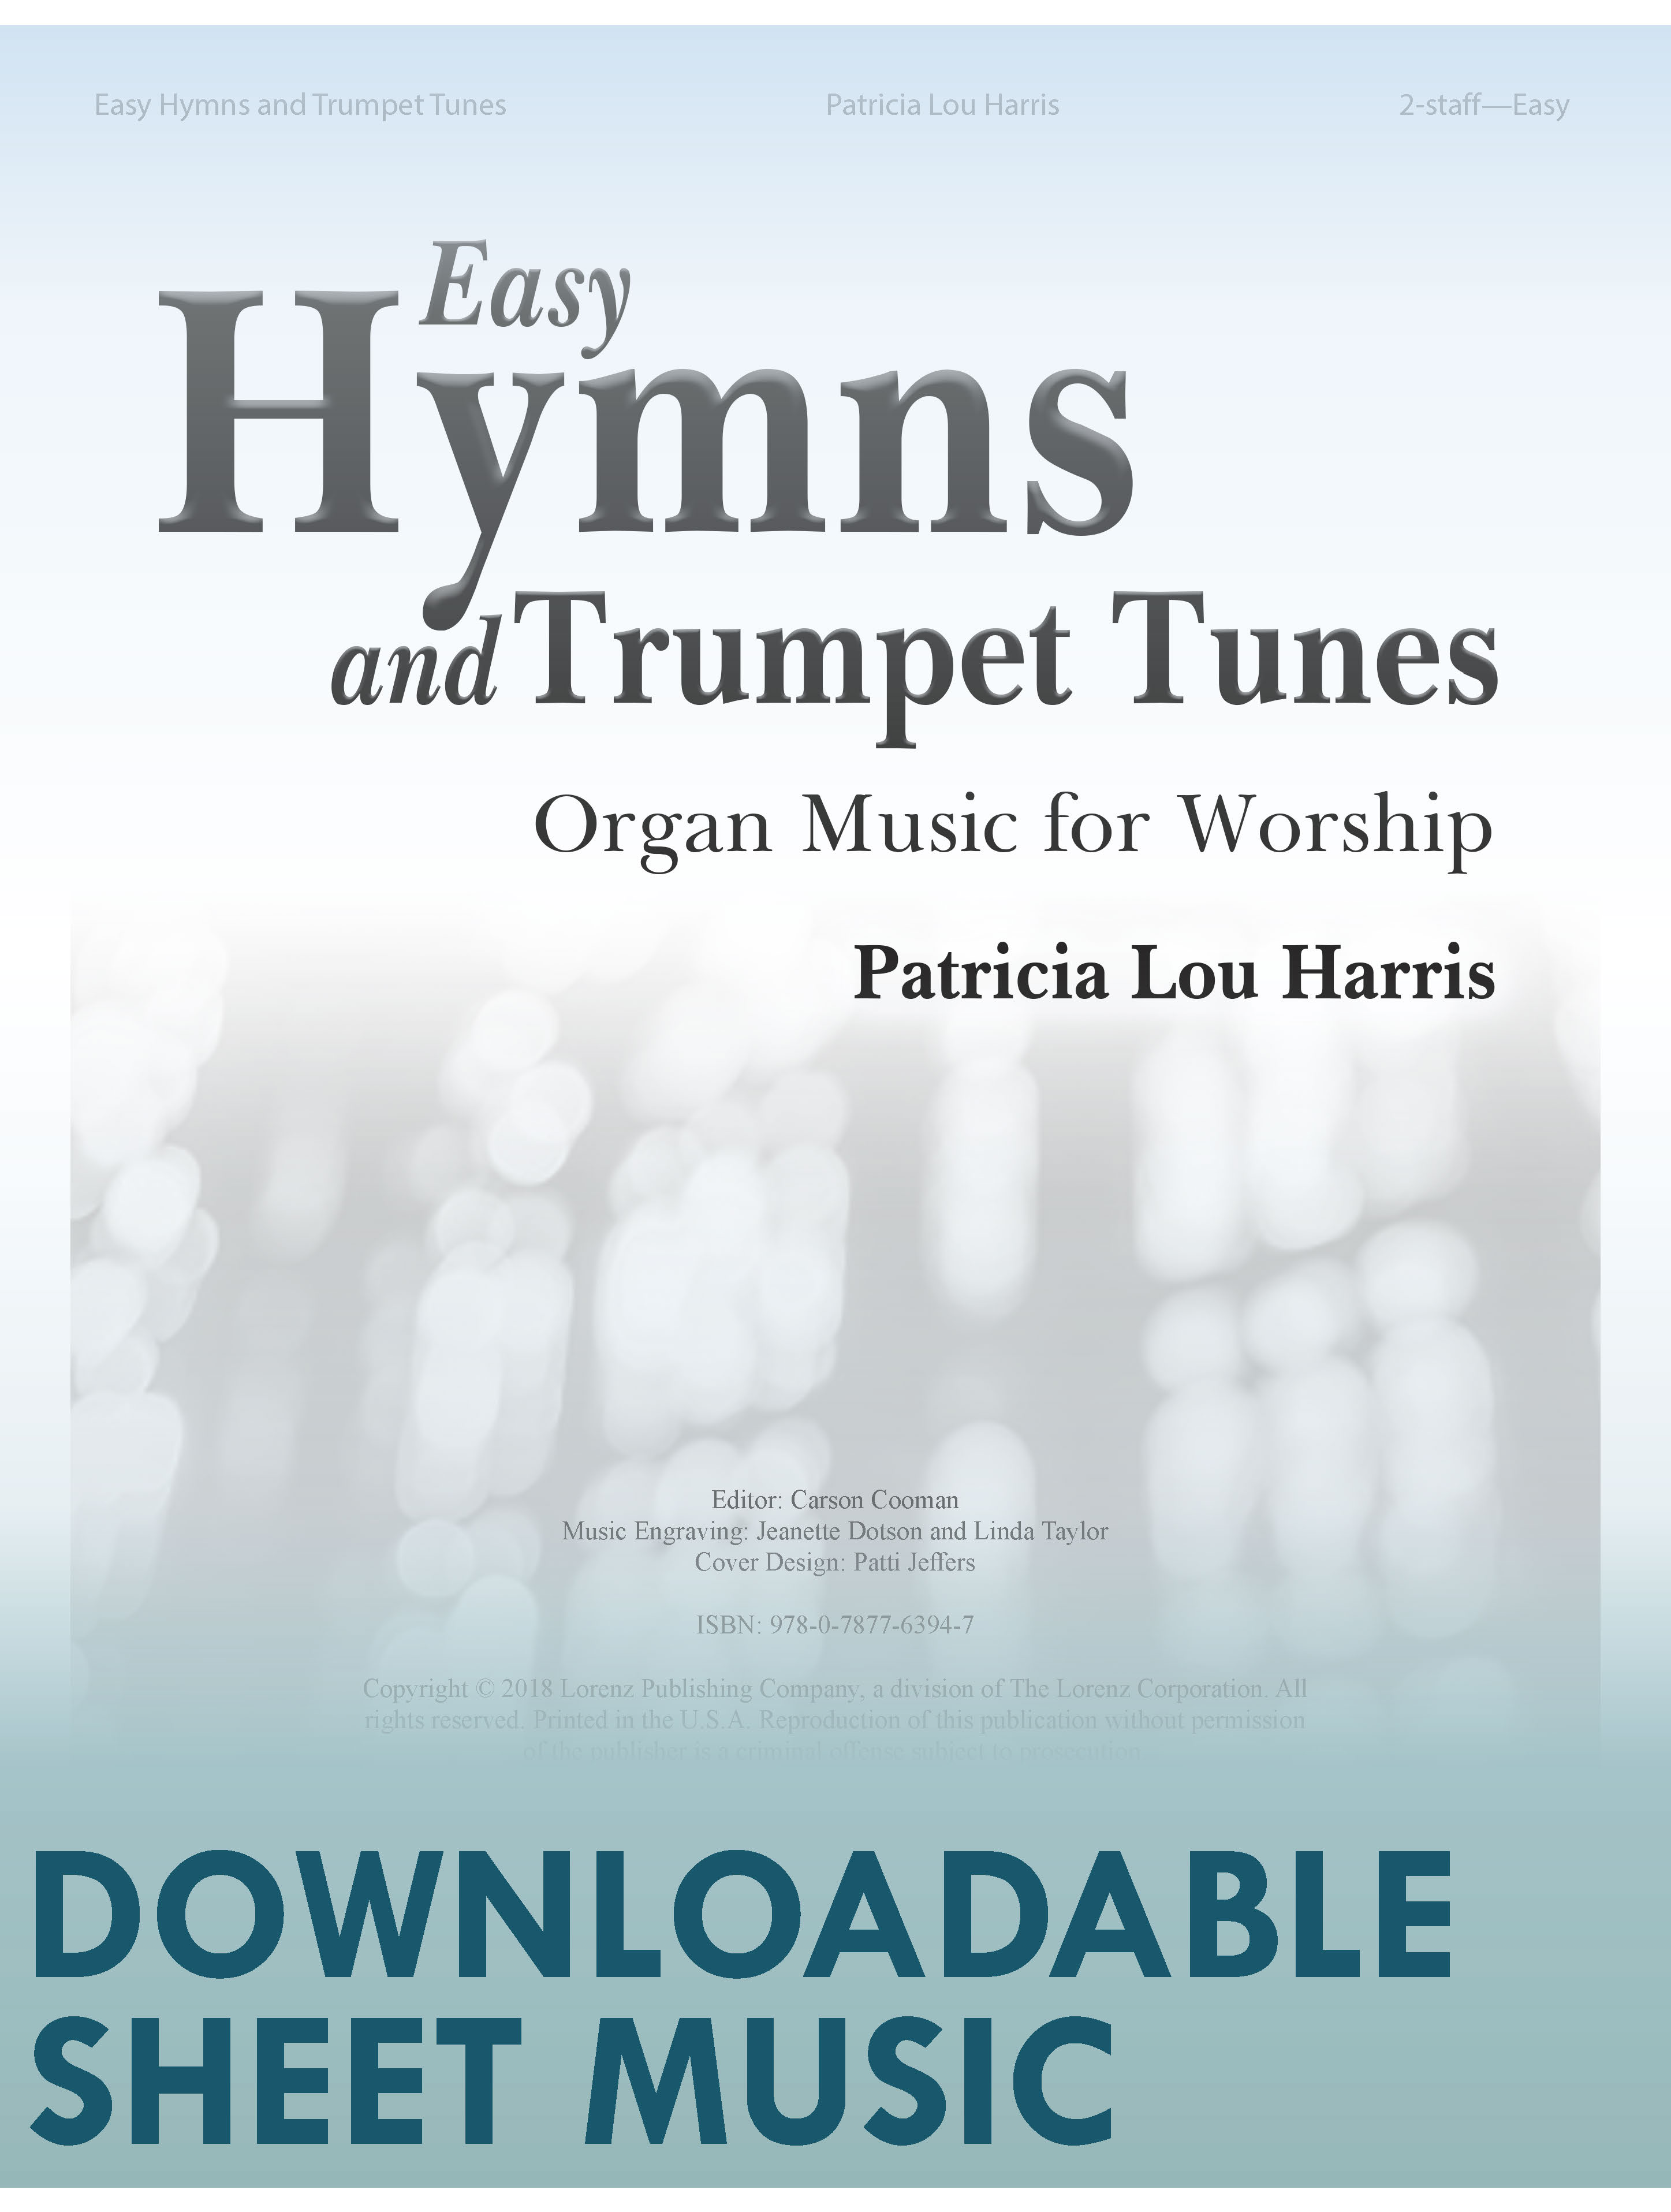 Easy Hymns and Trumpet Tunes - Digital Download